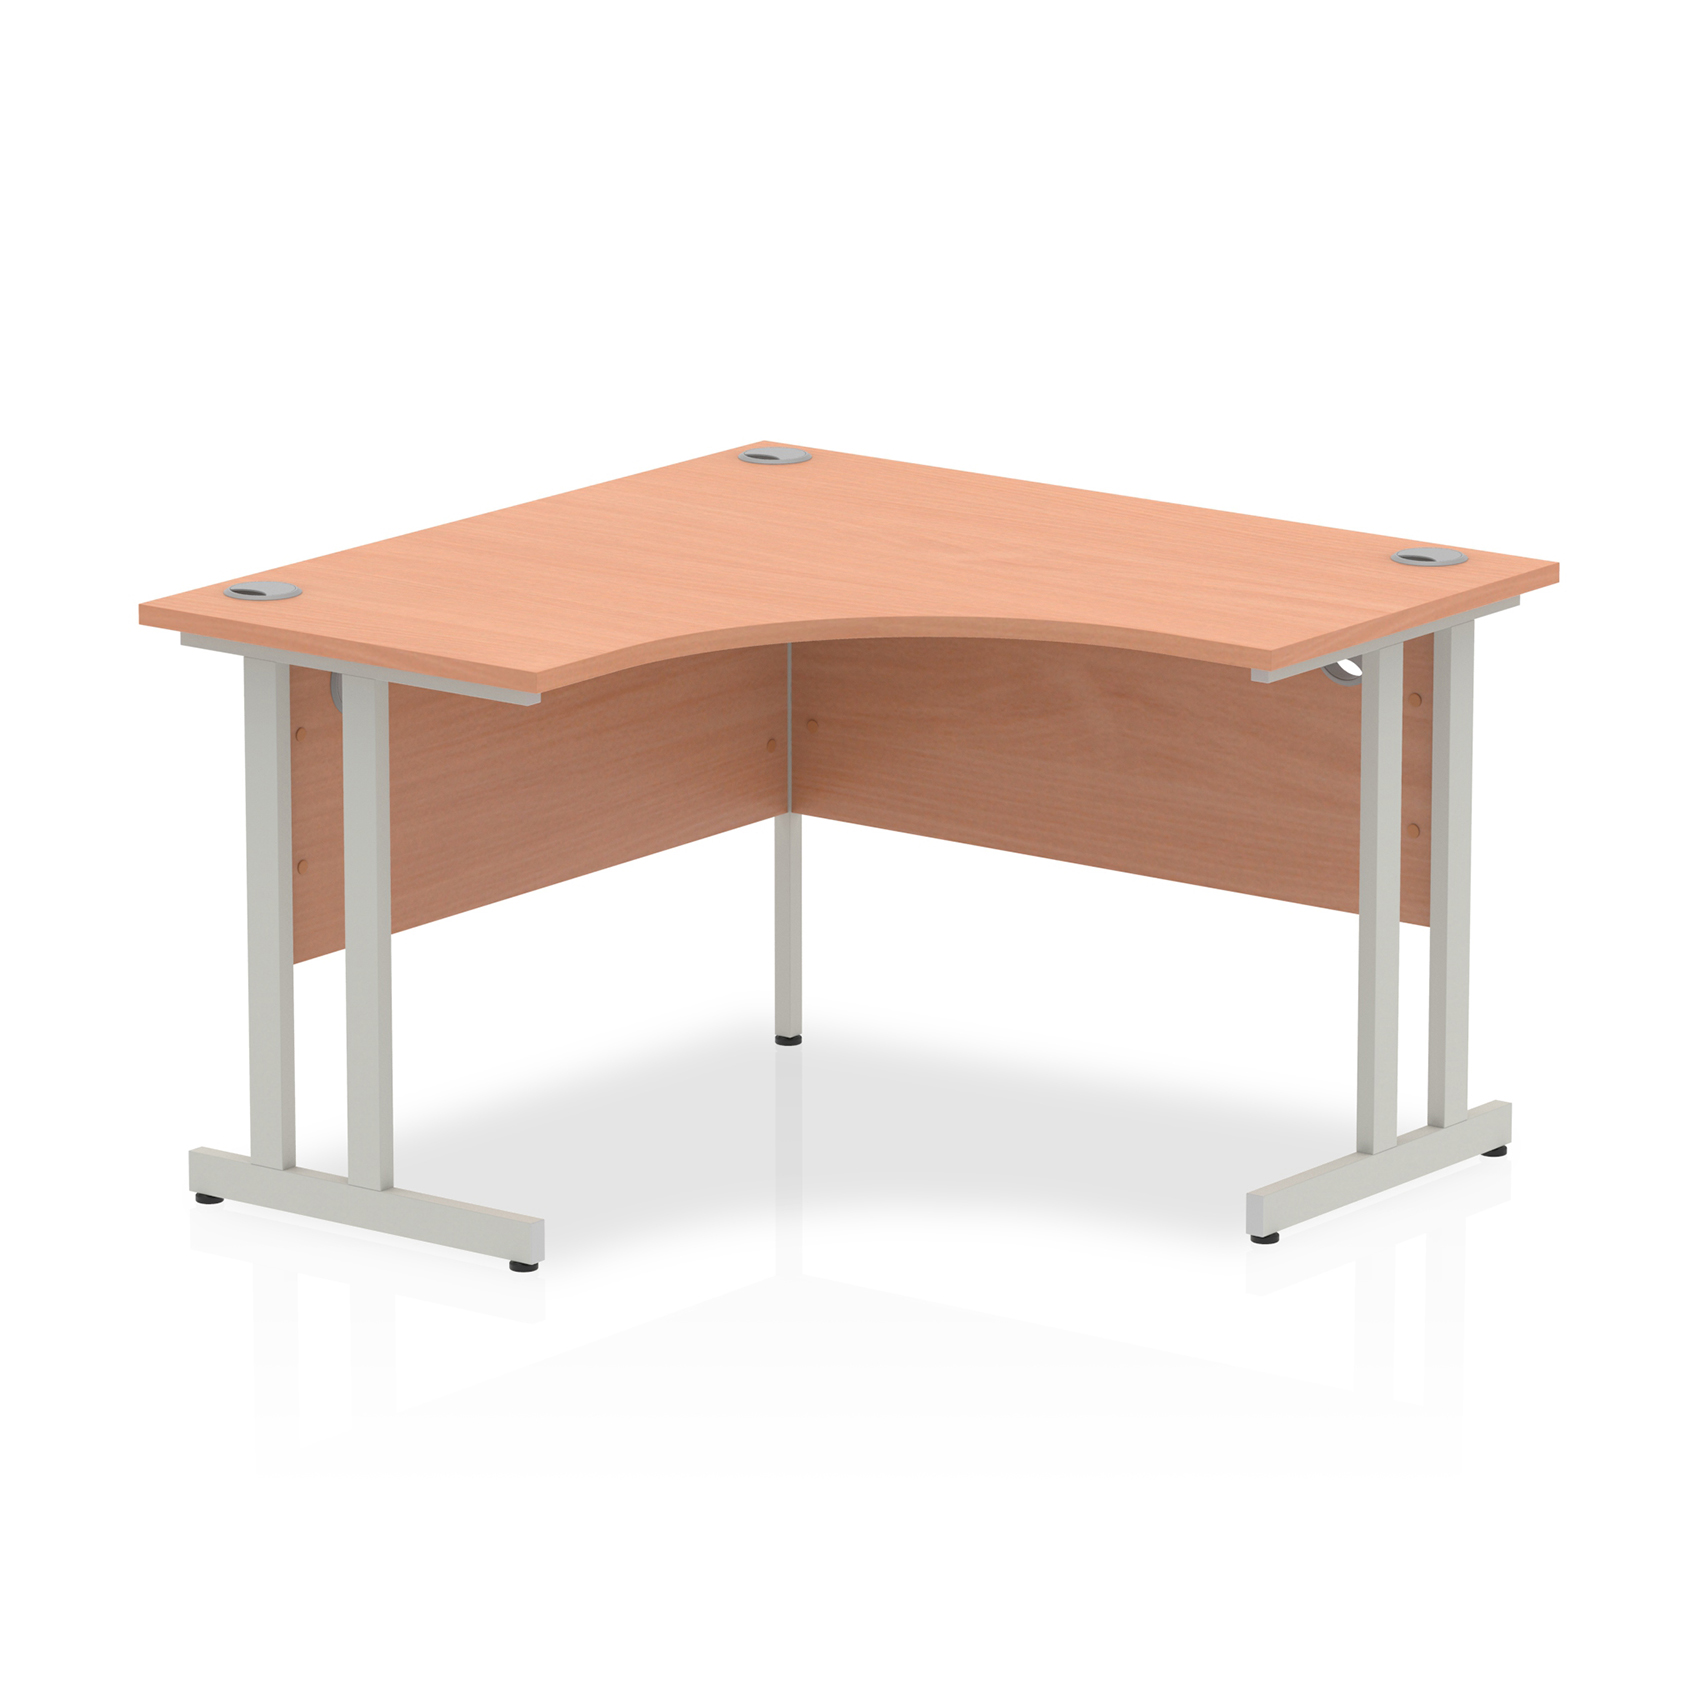 Trexus Call Centre Desk Cantilever 1200x1200mm Beech Ref I000296